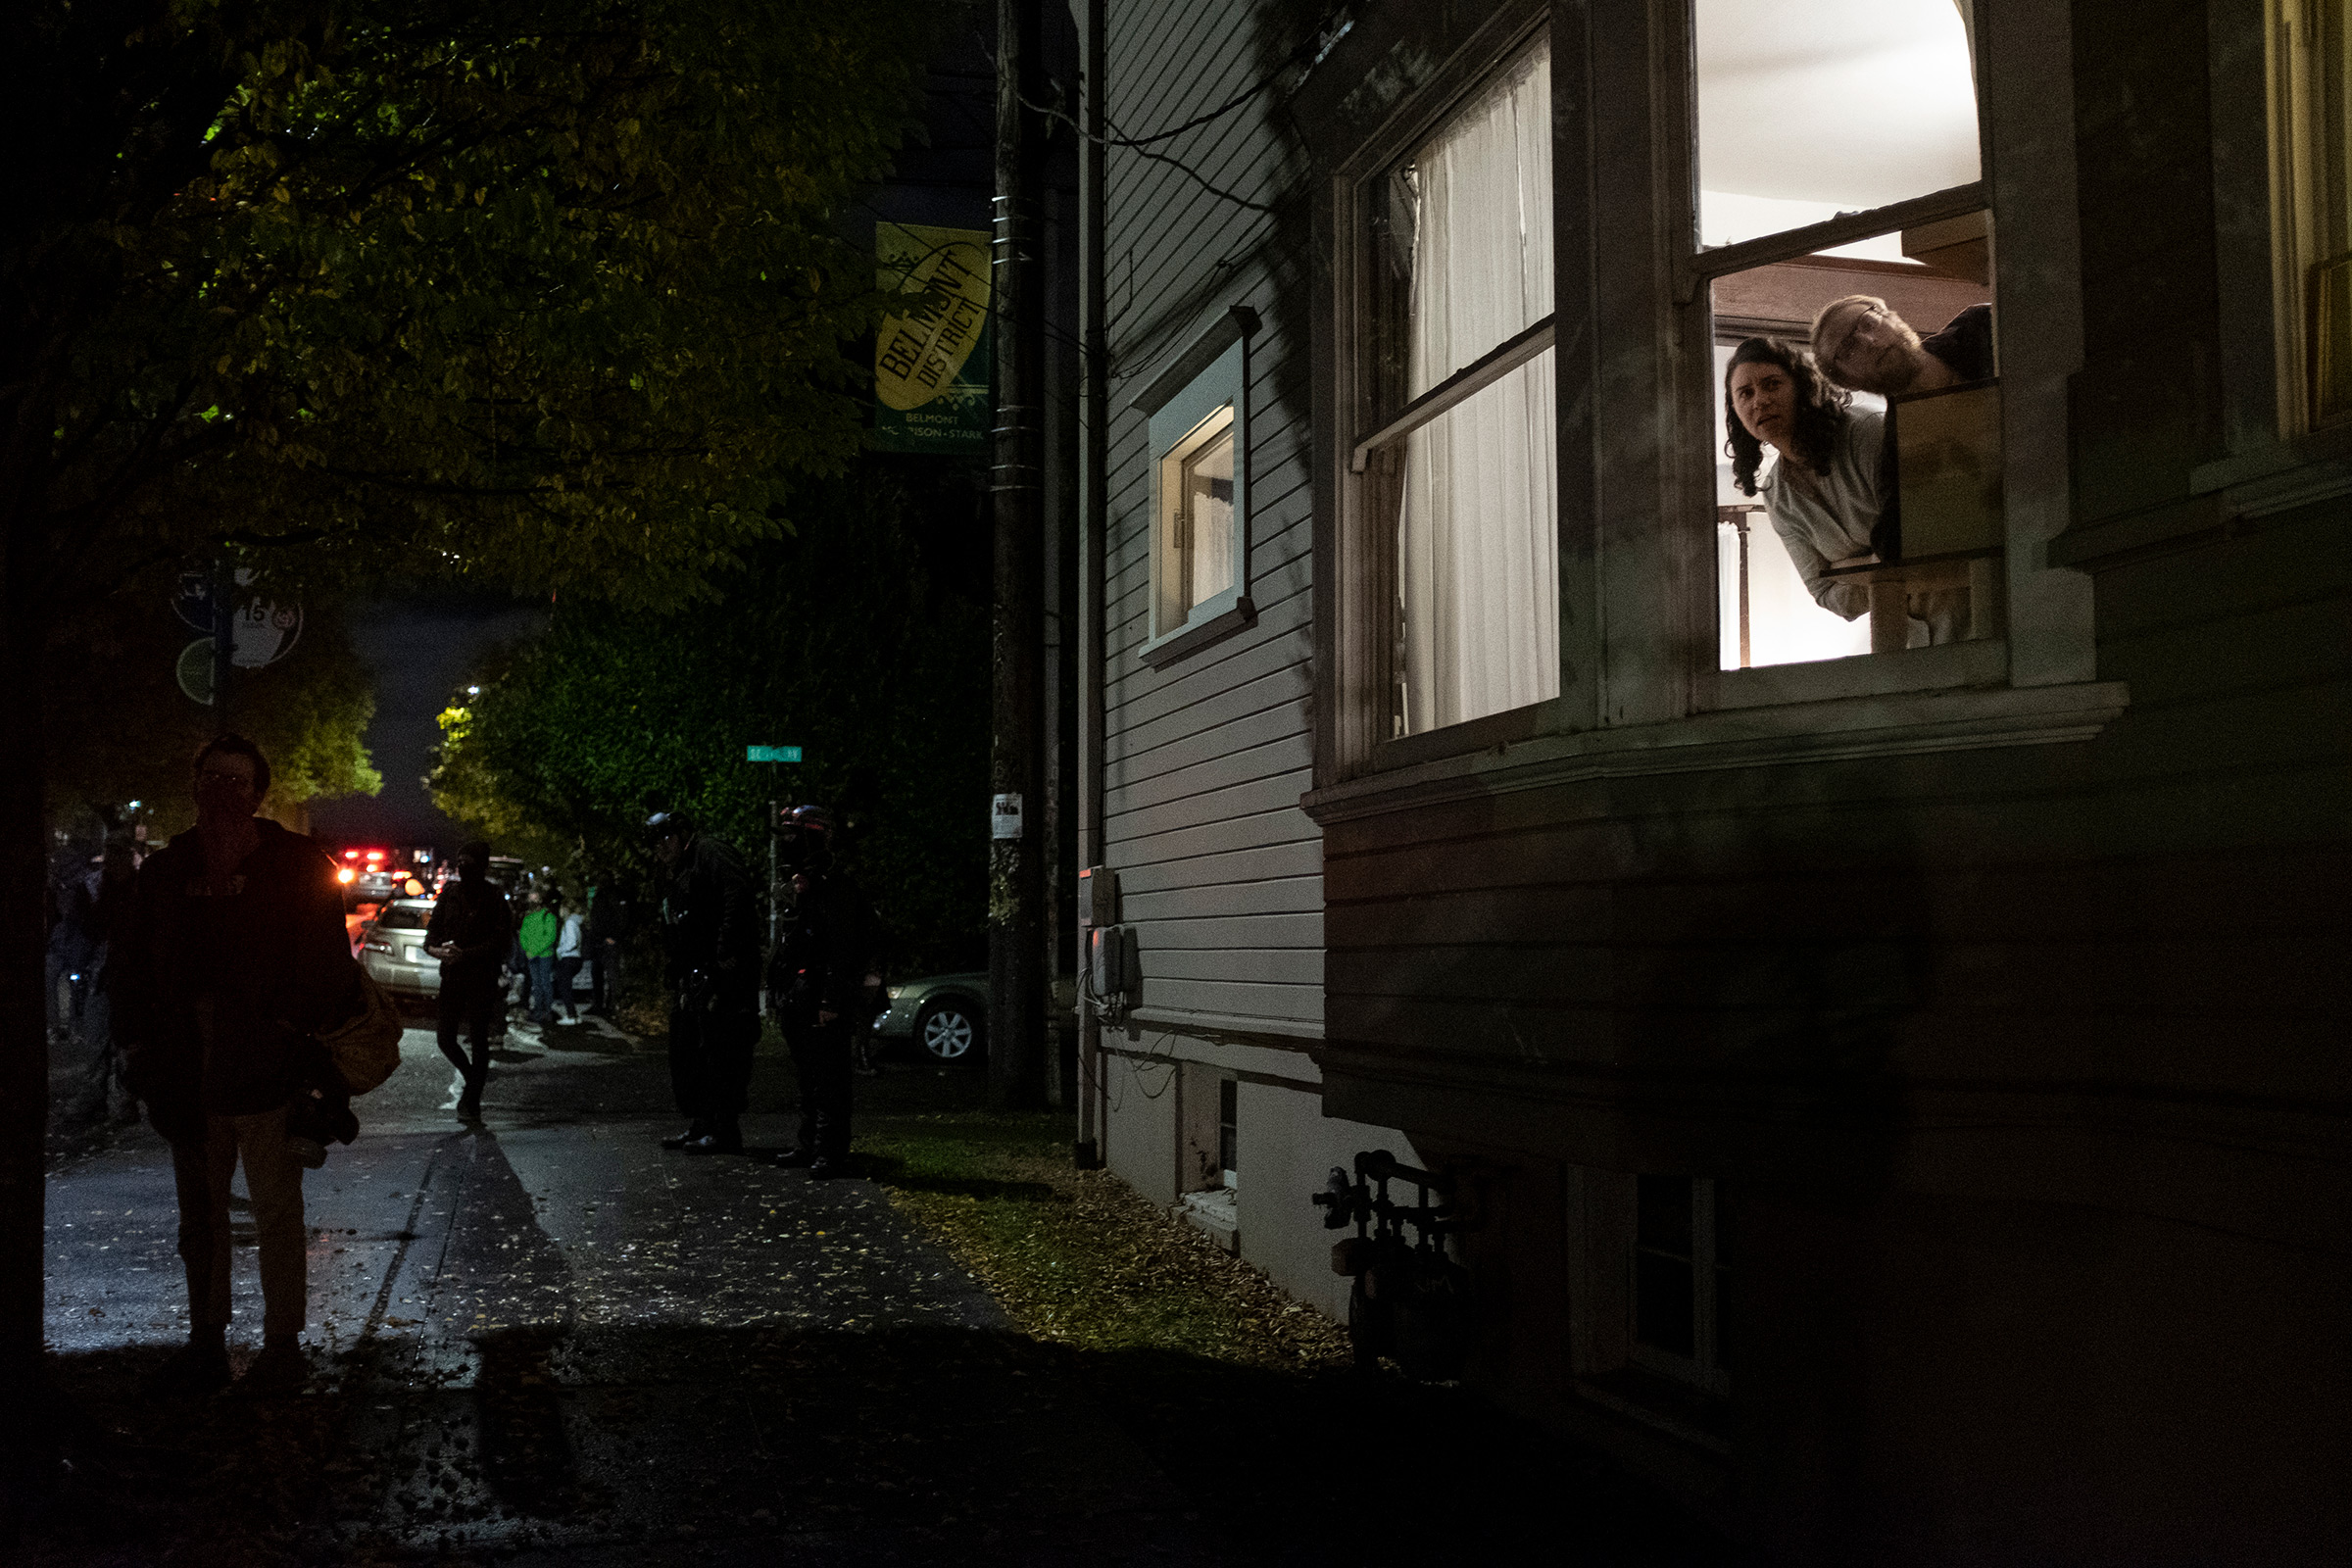 Residents watch a Black Lives Matter protest march through their neighborhood on election day in Portland, Ore., Nov. 3, 2020.